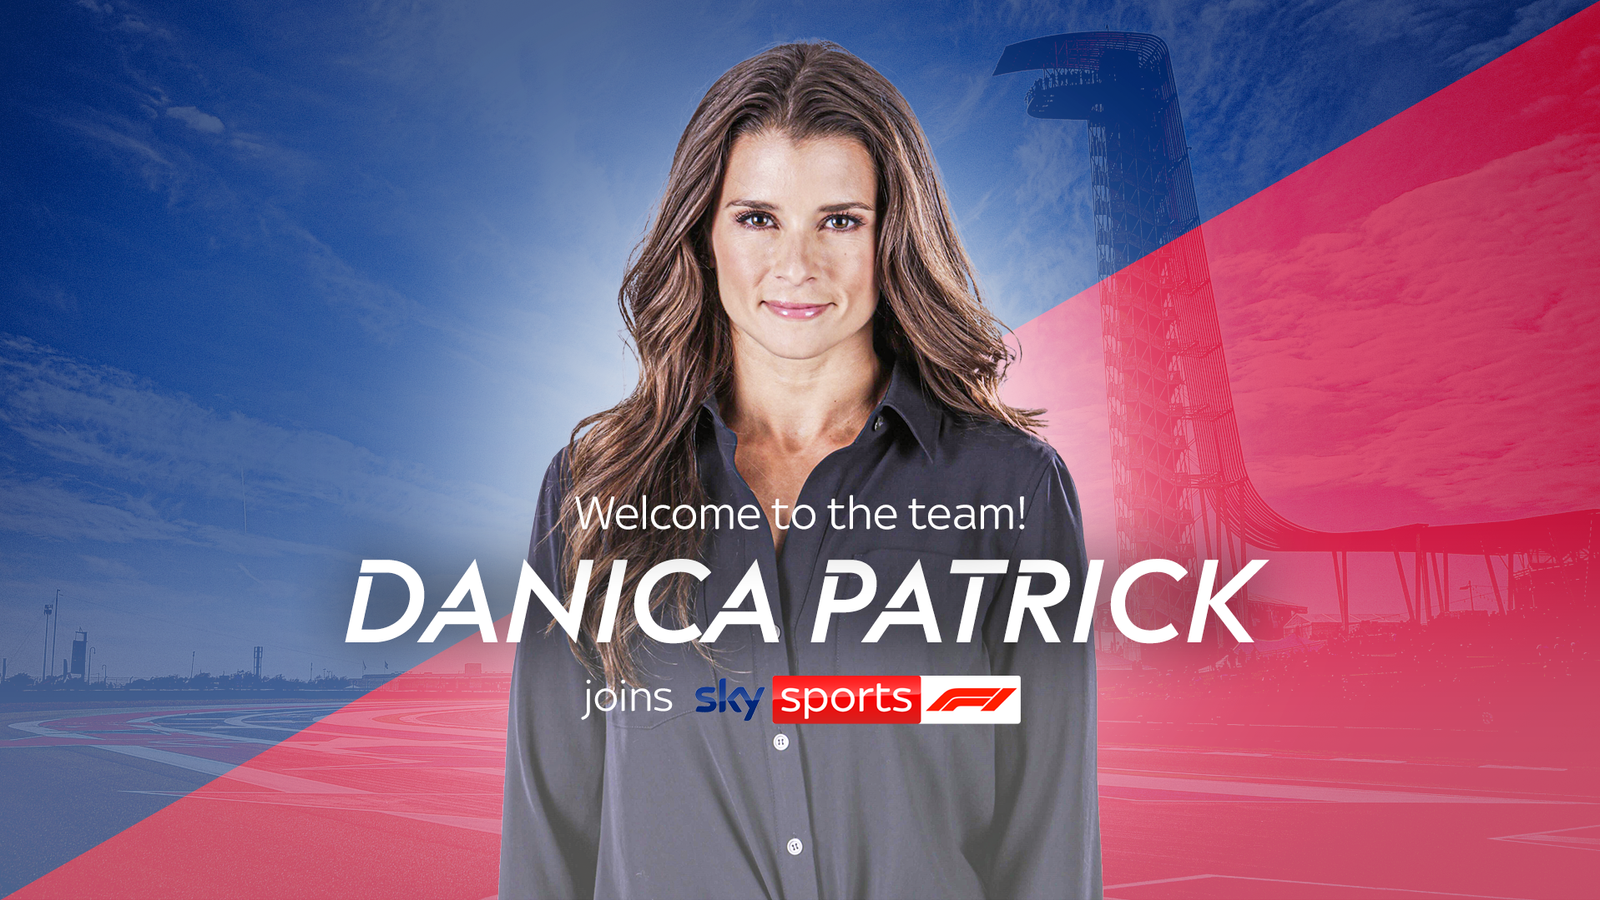 Danica Patrick joins Sky Sports F1 team for United States GP